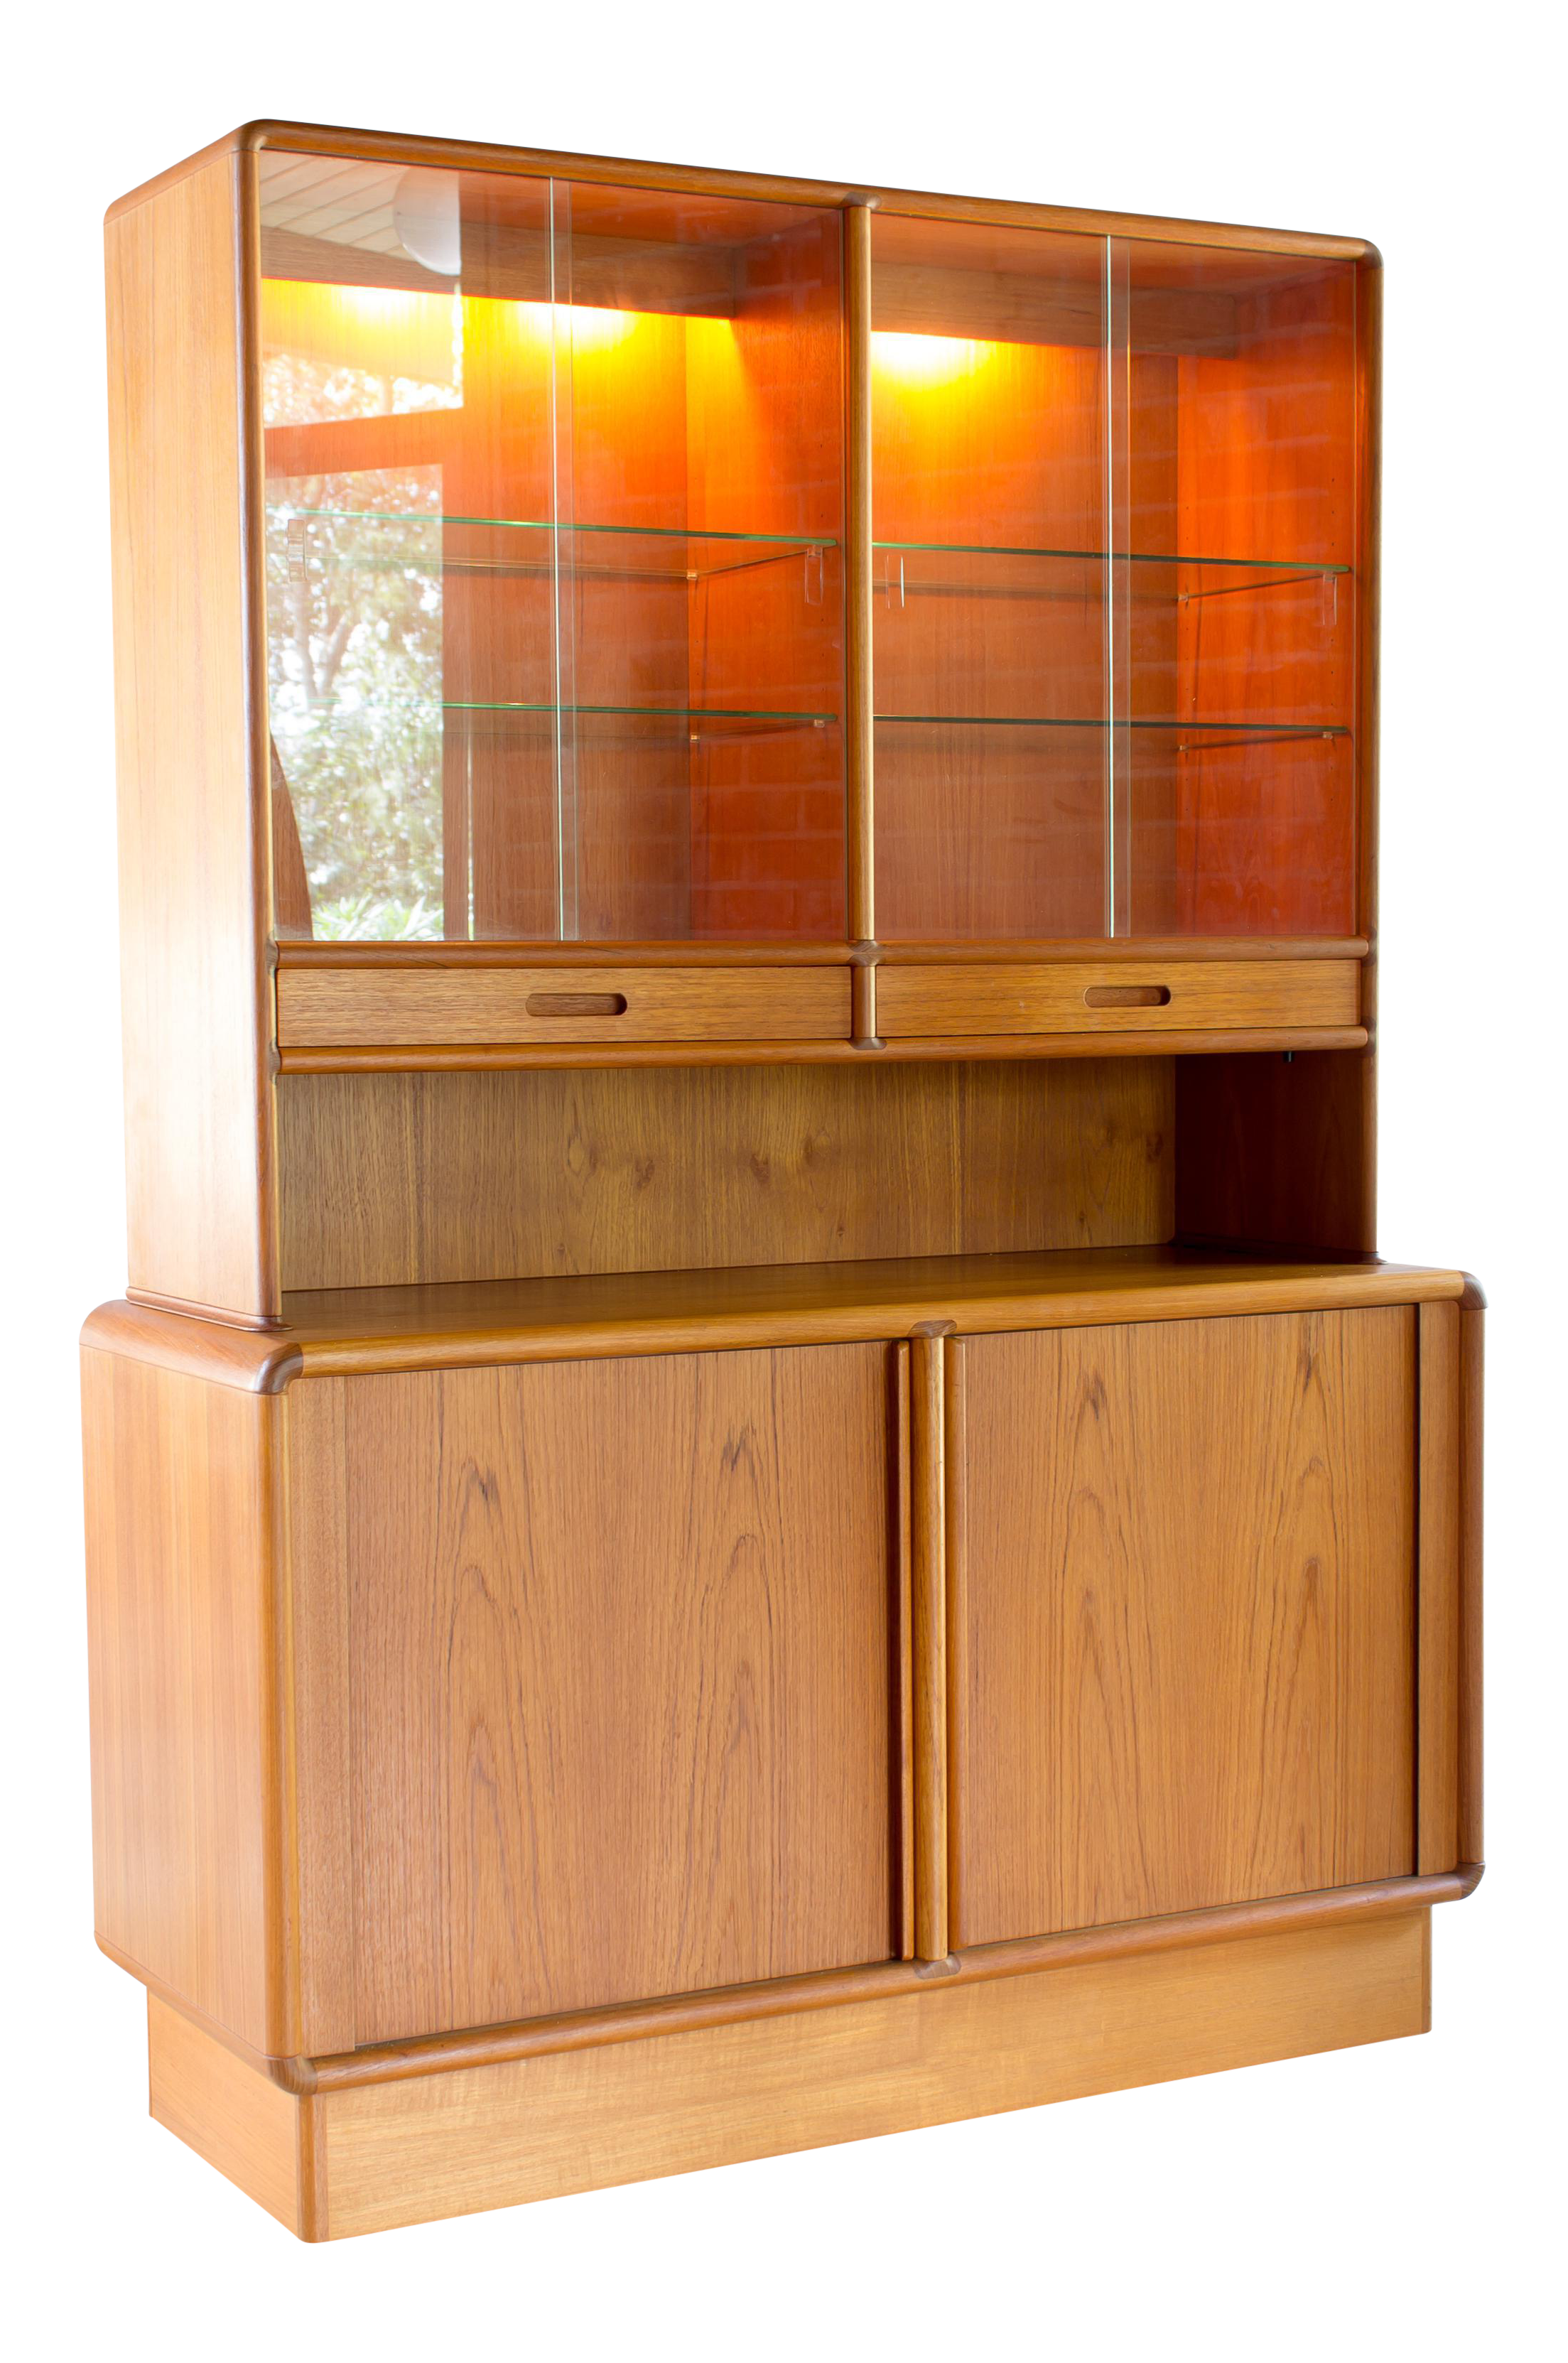 Kibaek Mobelfabrik A/S Teak China Cabinet | Chairish